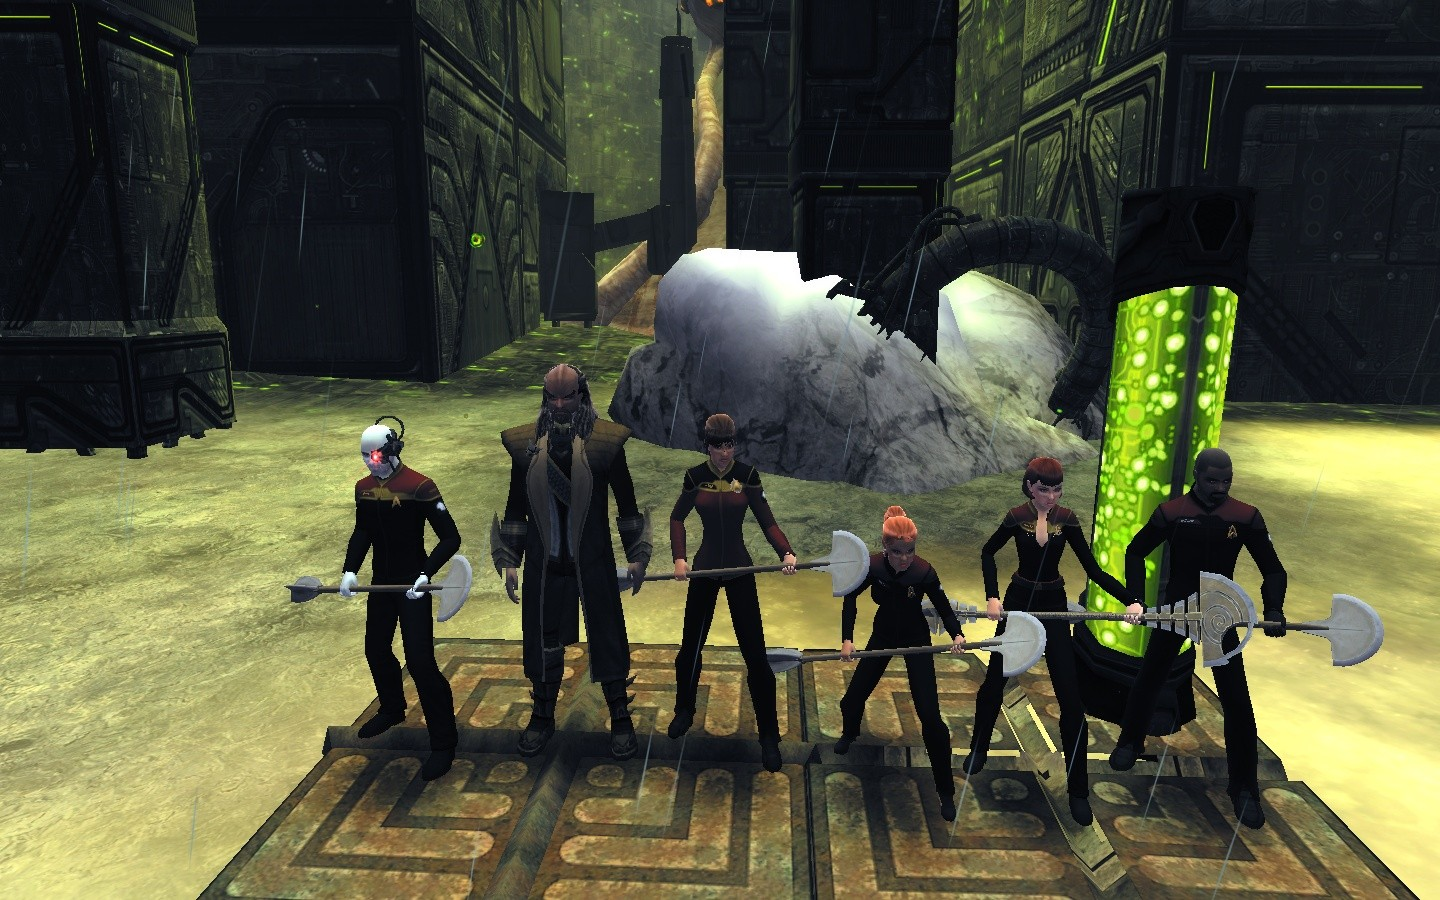 Star Trek Online - The Cure - L to R: Twenty, Klingon Captain Ja'rod (NPC), Srafa, Iceroid, Aqua, Gabriel